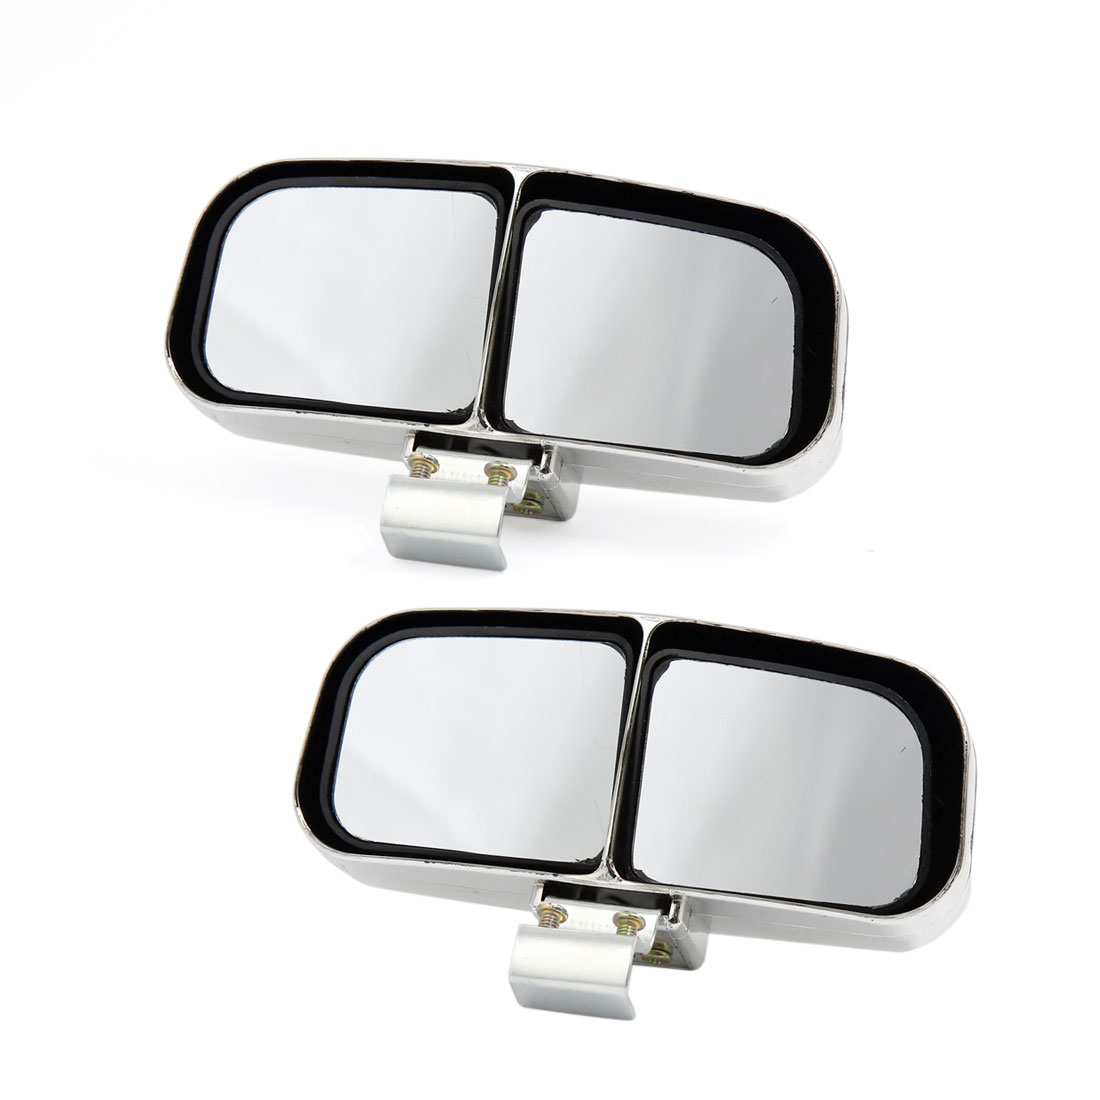 2pcs Adjustable Car Auxiliary Wide Angle Rearview Blind Spot Parking Mirror Silver Tone